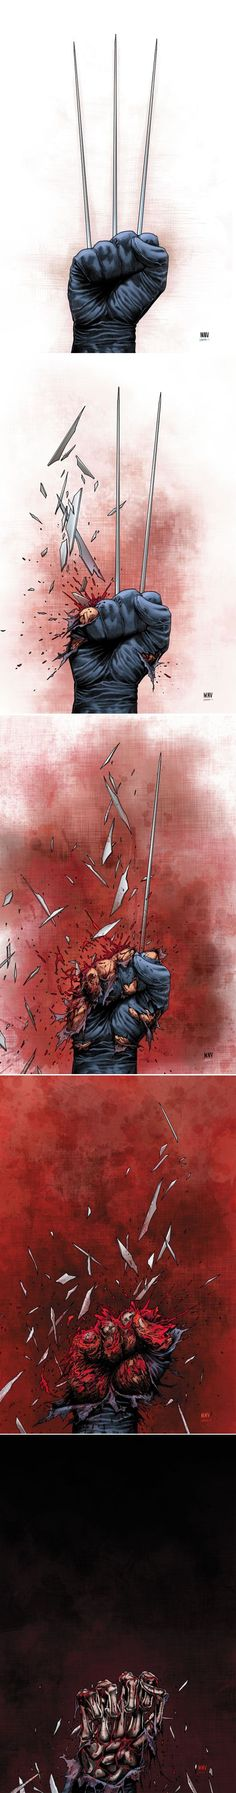 Death of Wolverine by Steve McNiven: